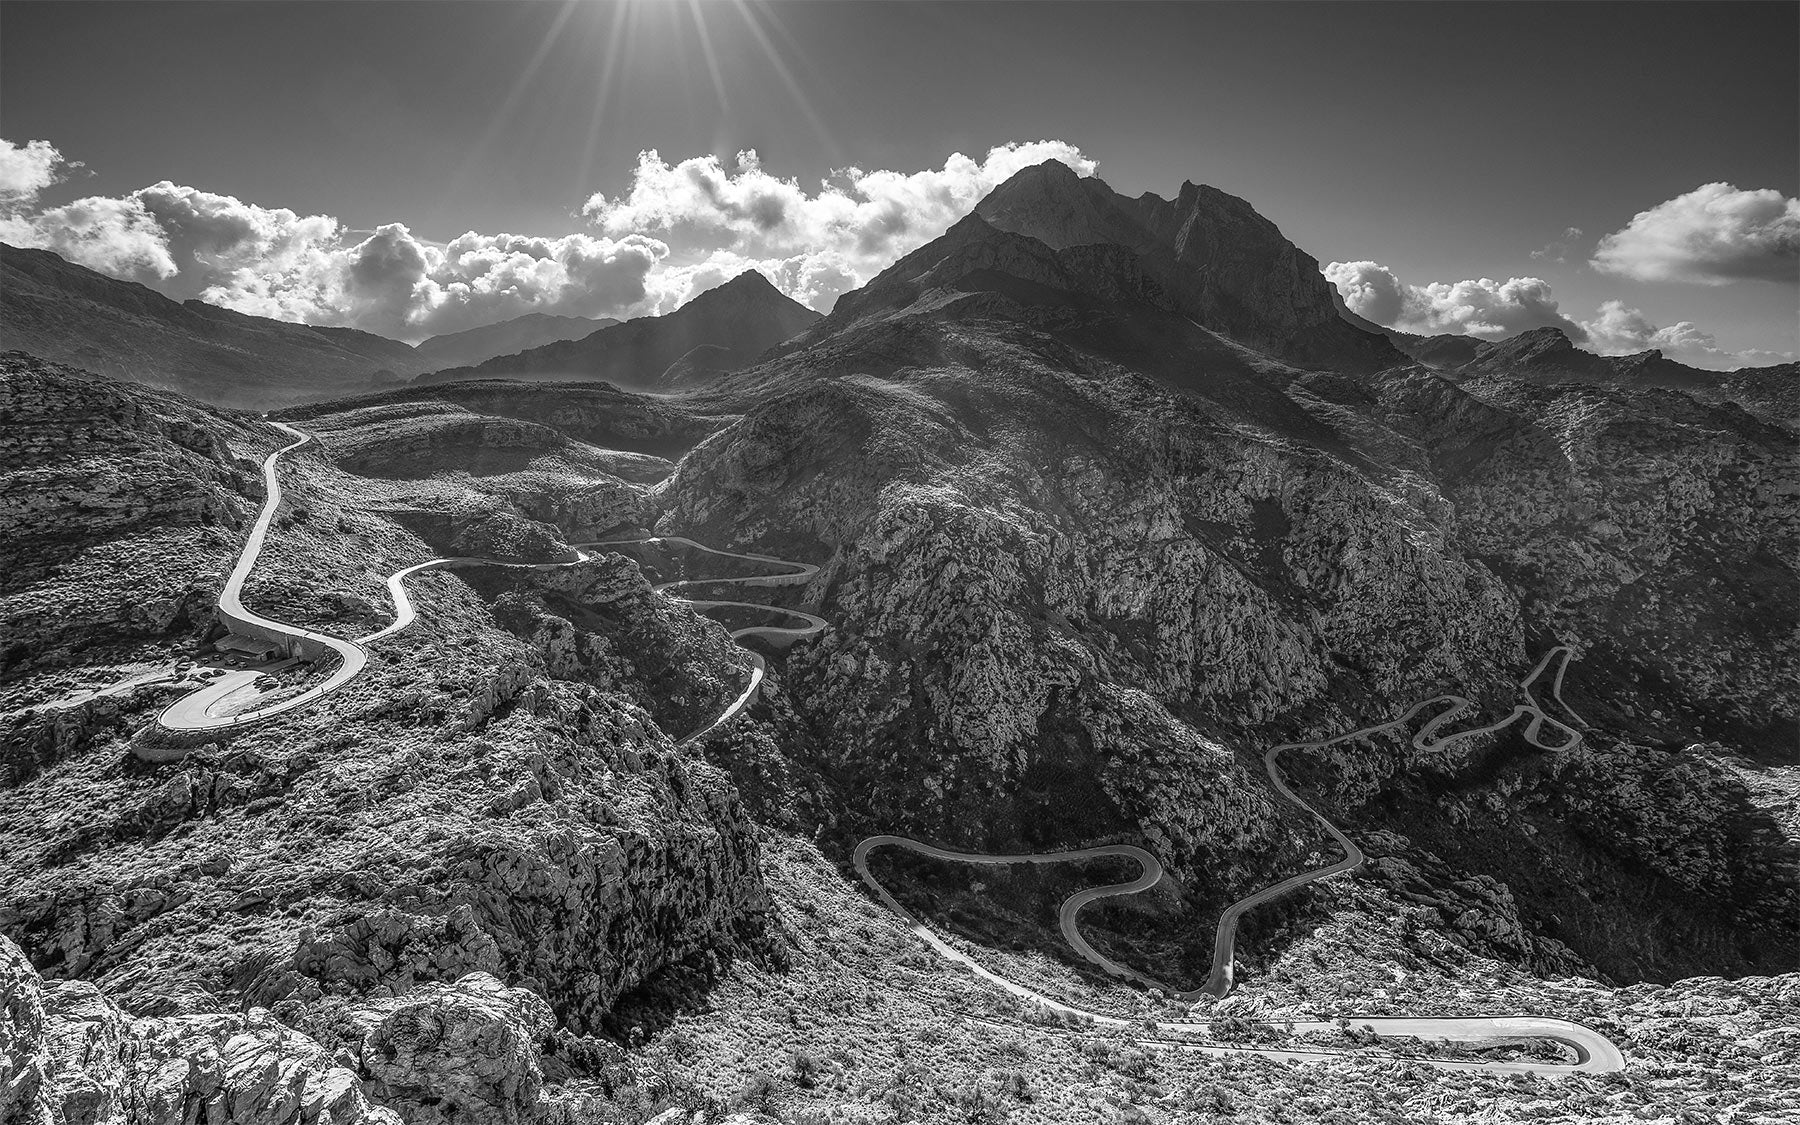 Sa Calobra - Colour fine art photography prints. The Great Cycling Road Climbs by davidt